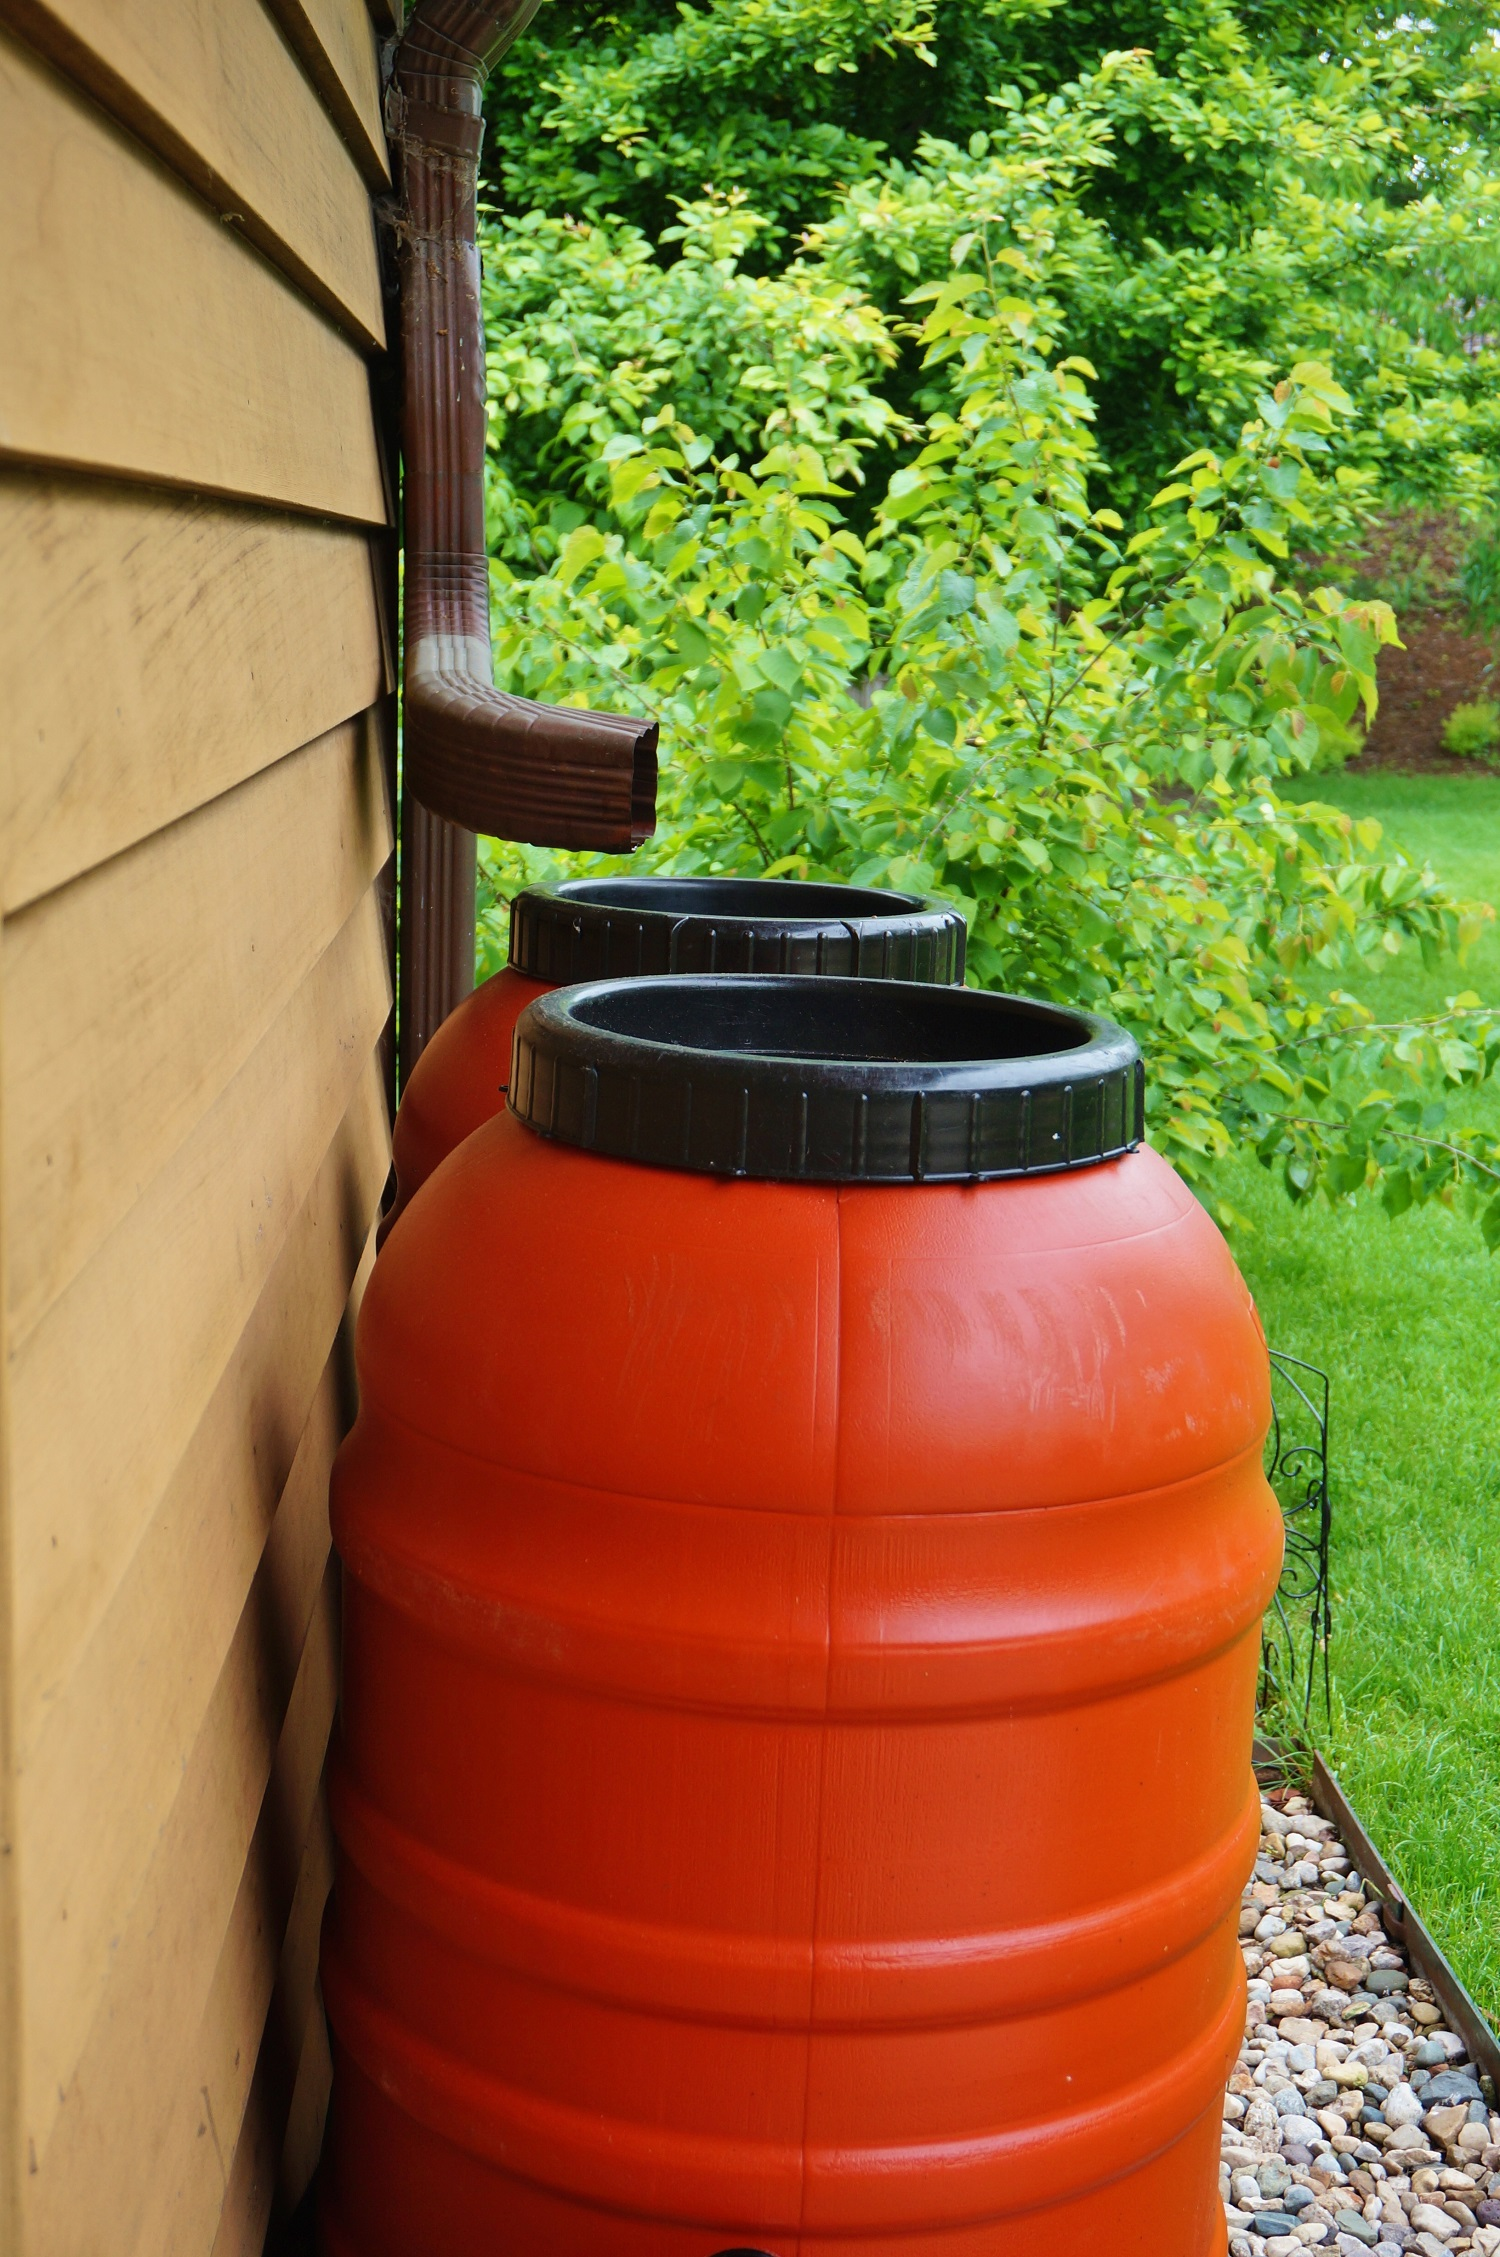 Rain barrels collecting water in the garden